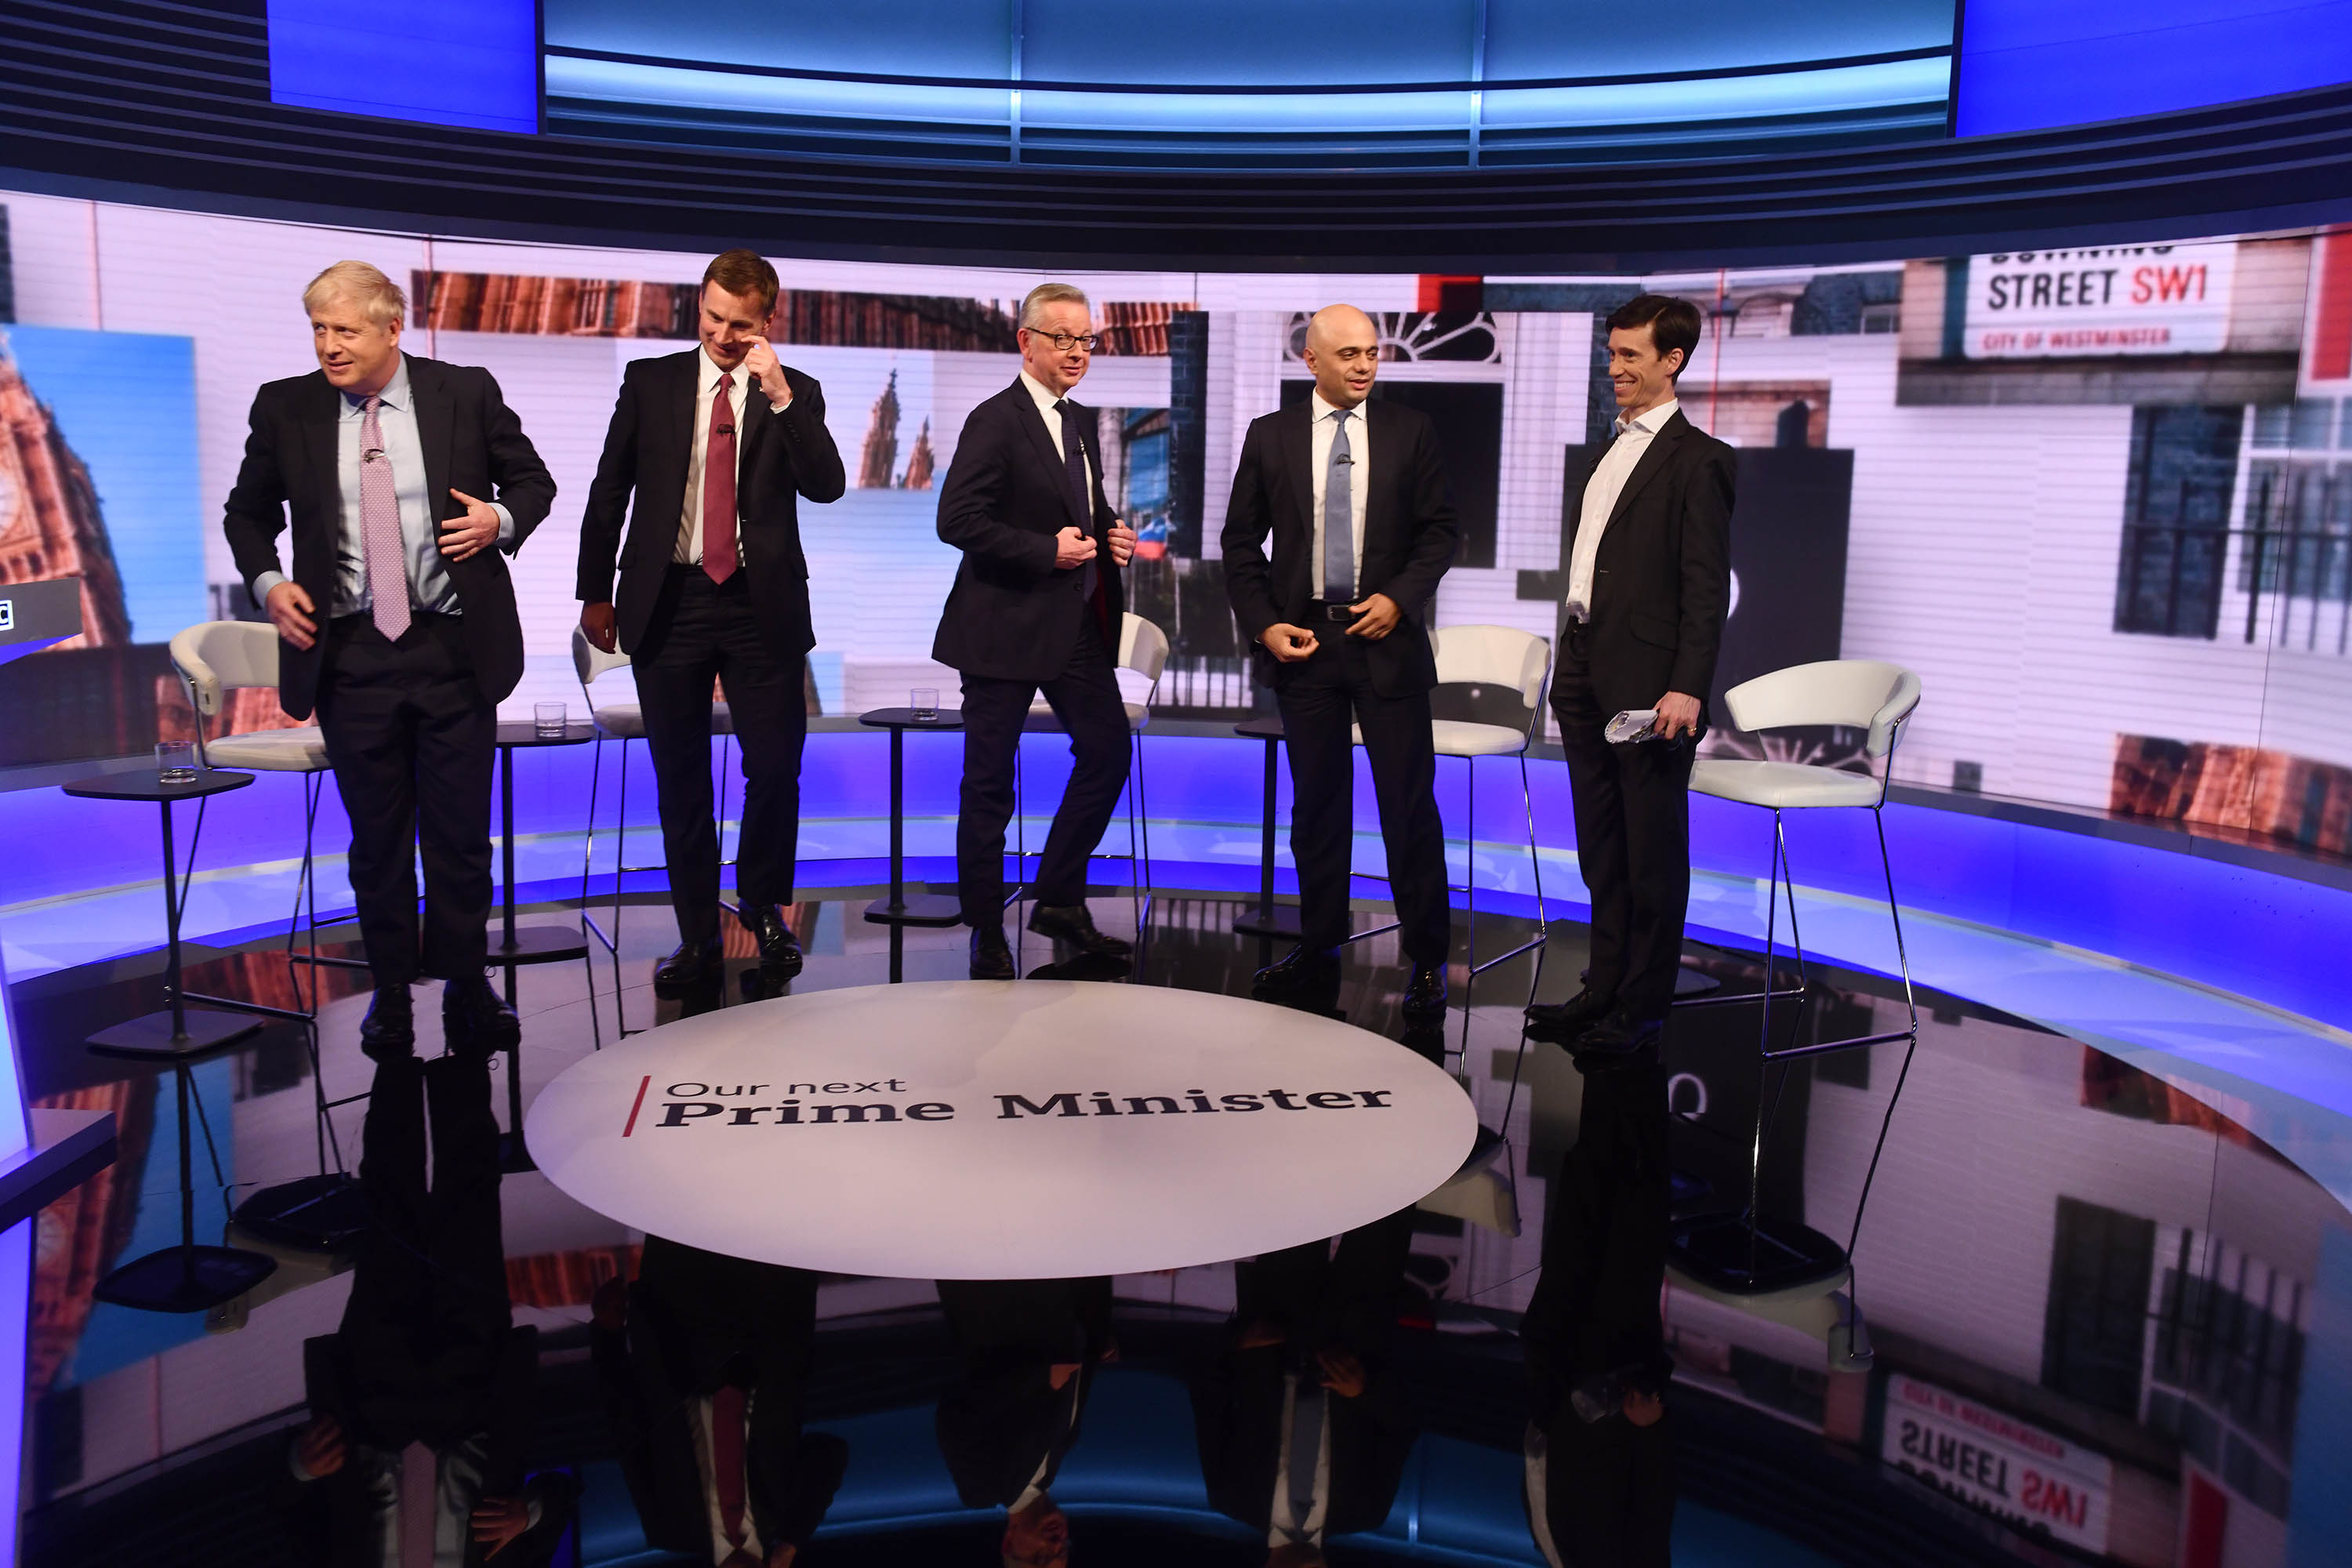 The leadership candidates take part in a TV debate